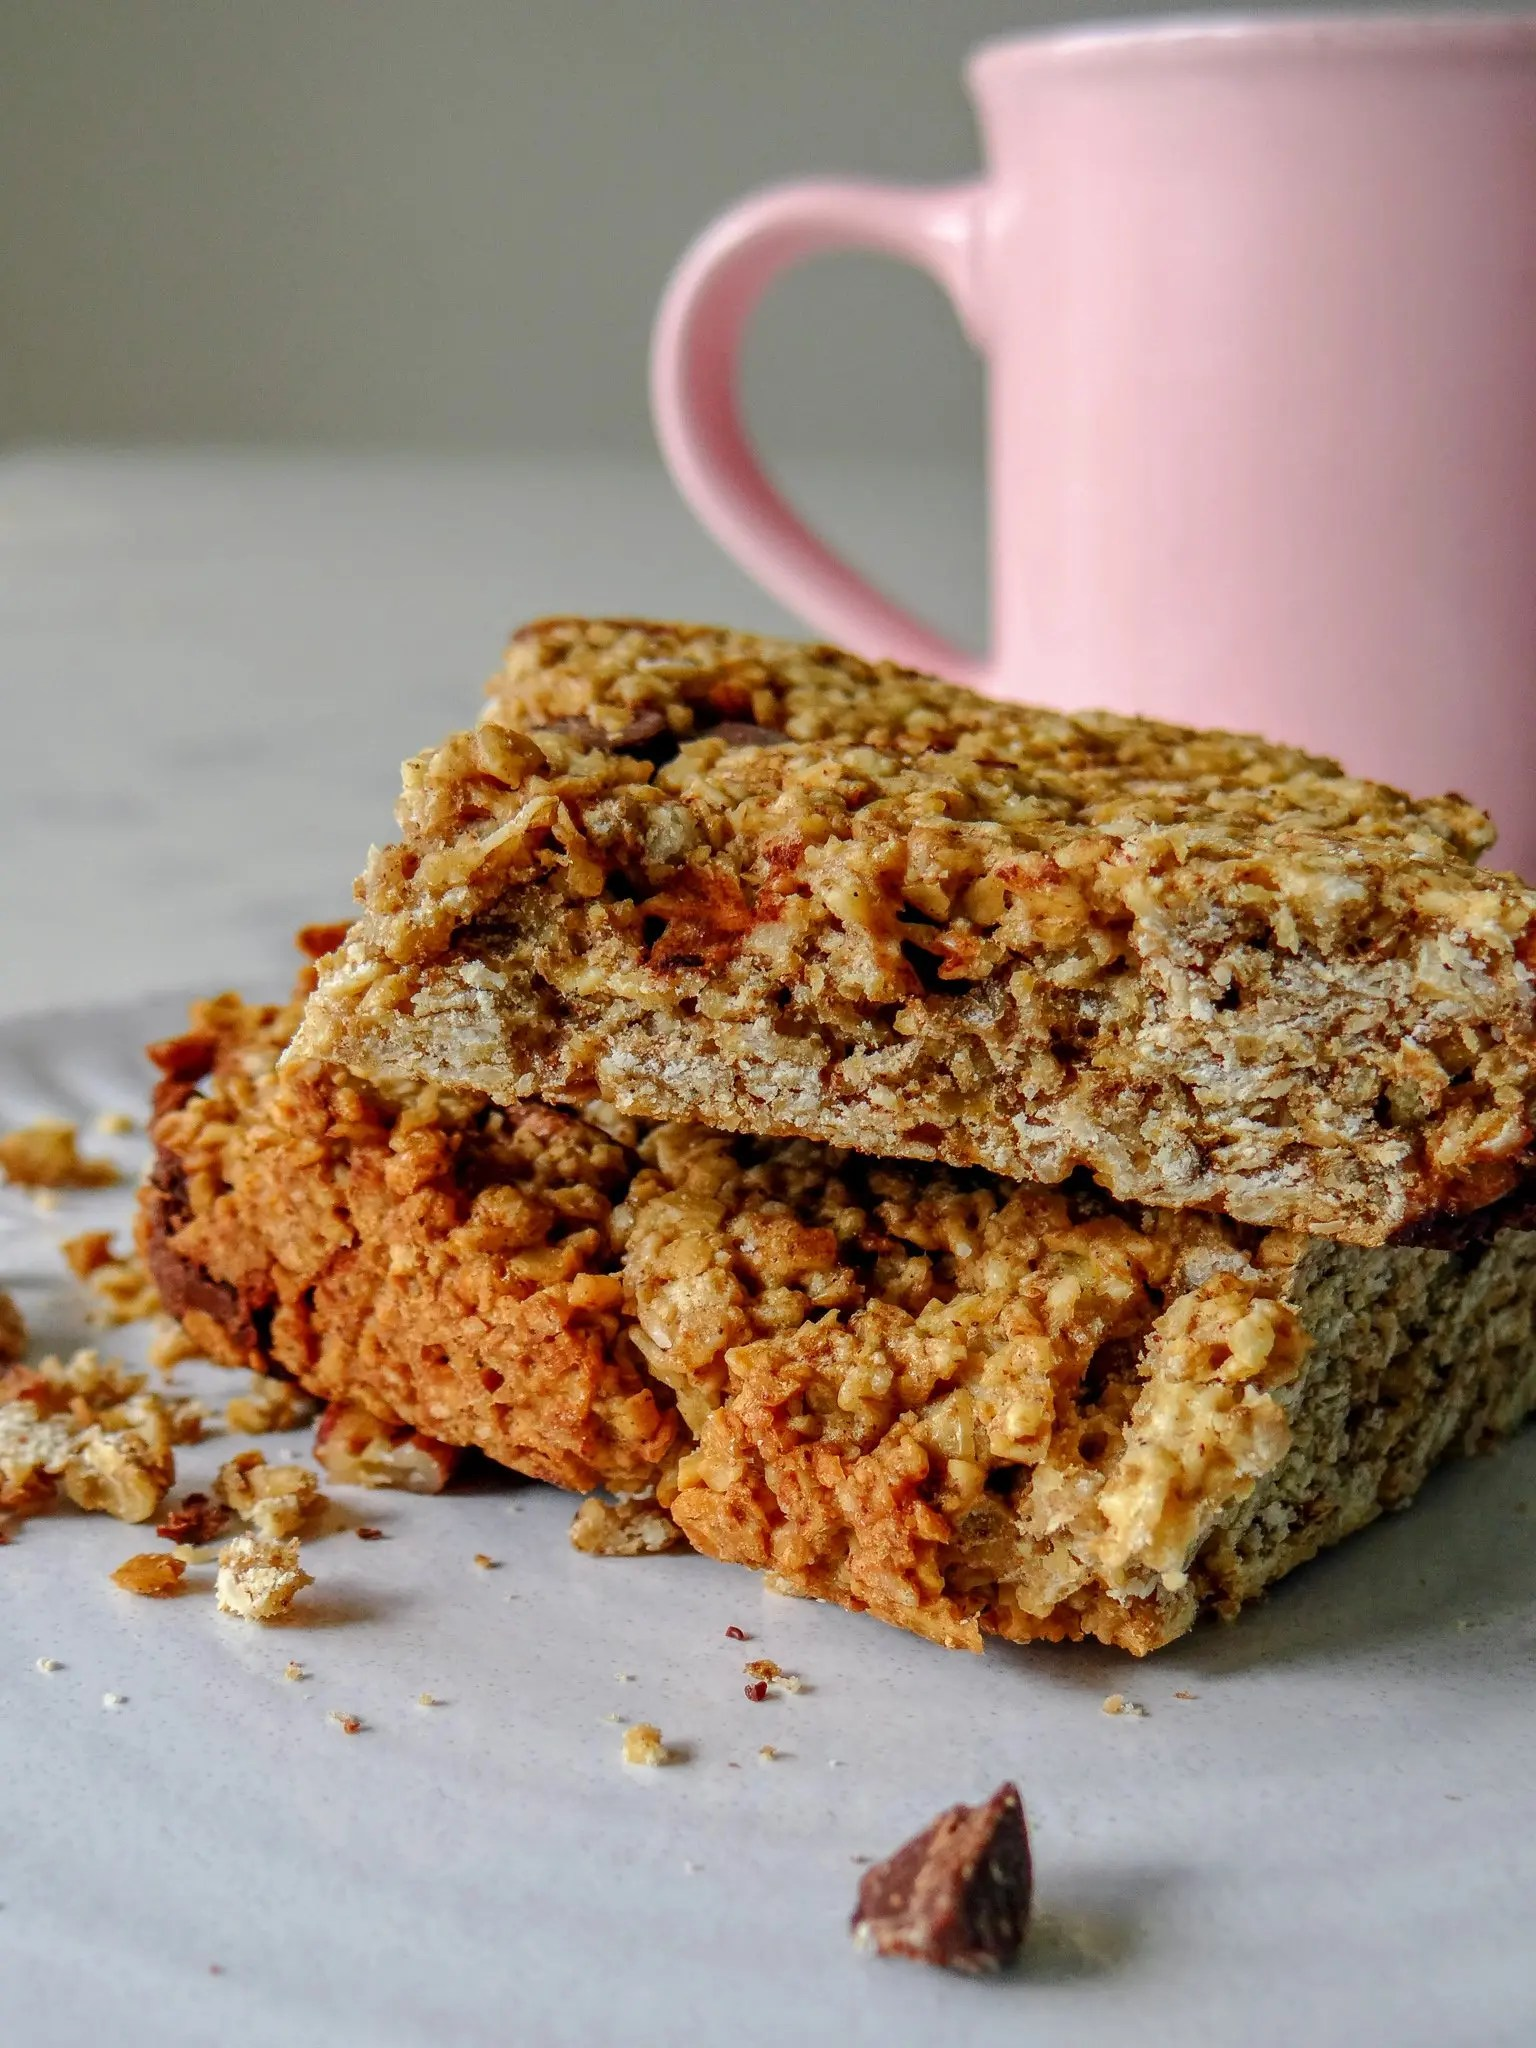 Image of Cowboy Oatmeal bars and coffee